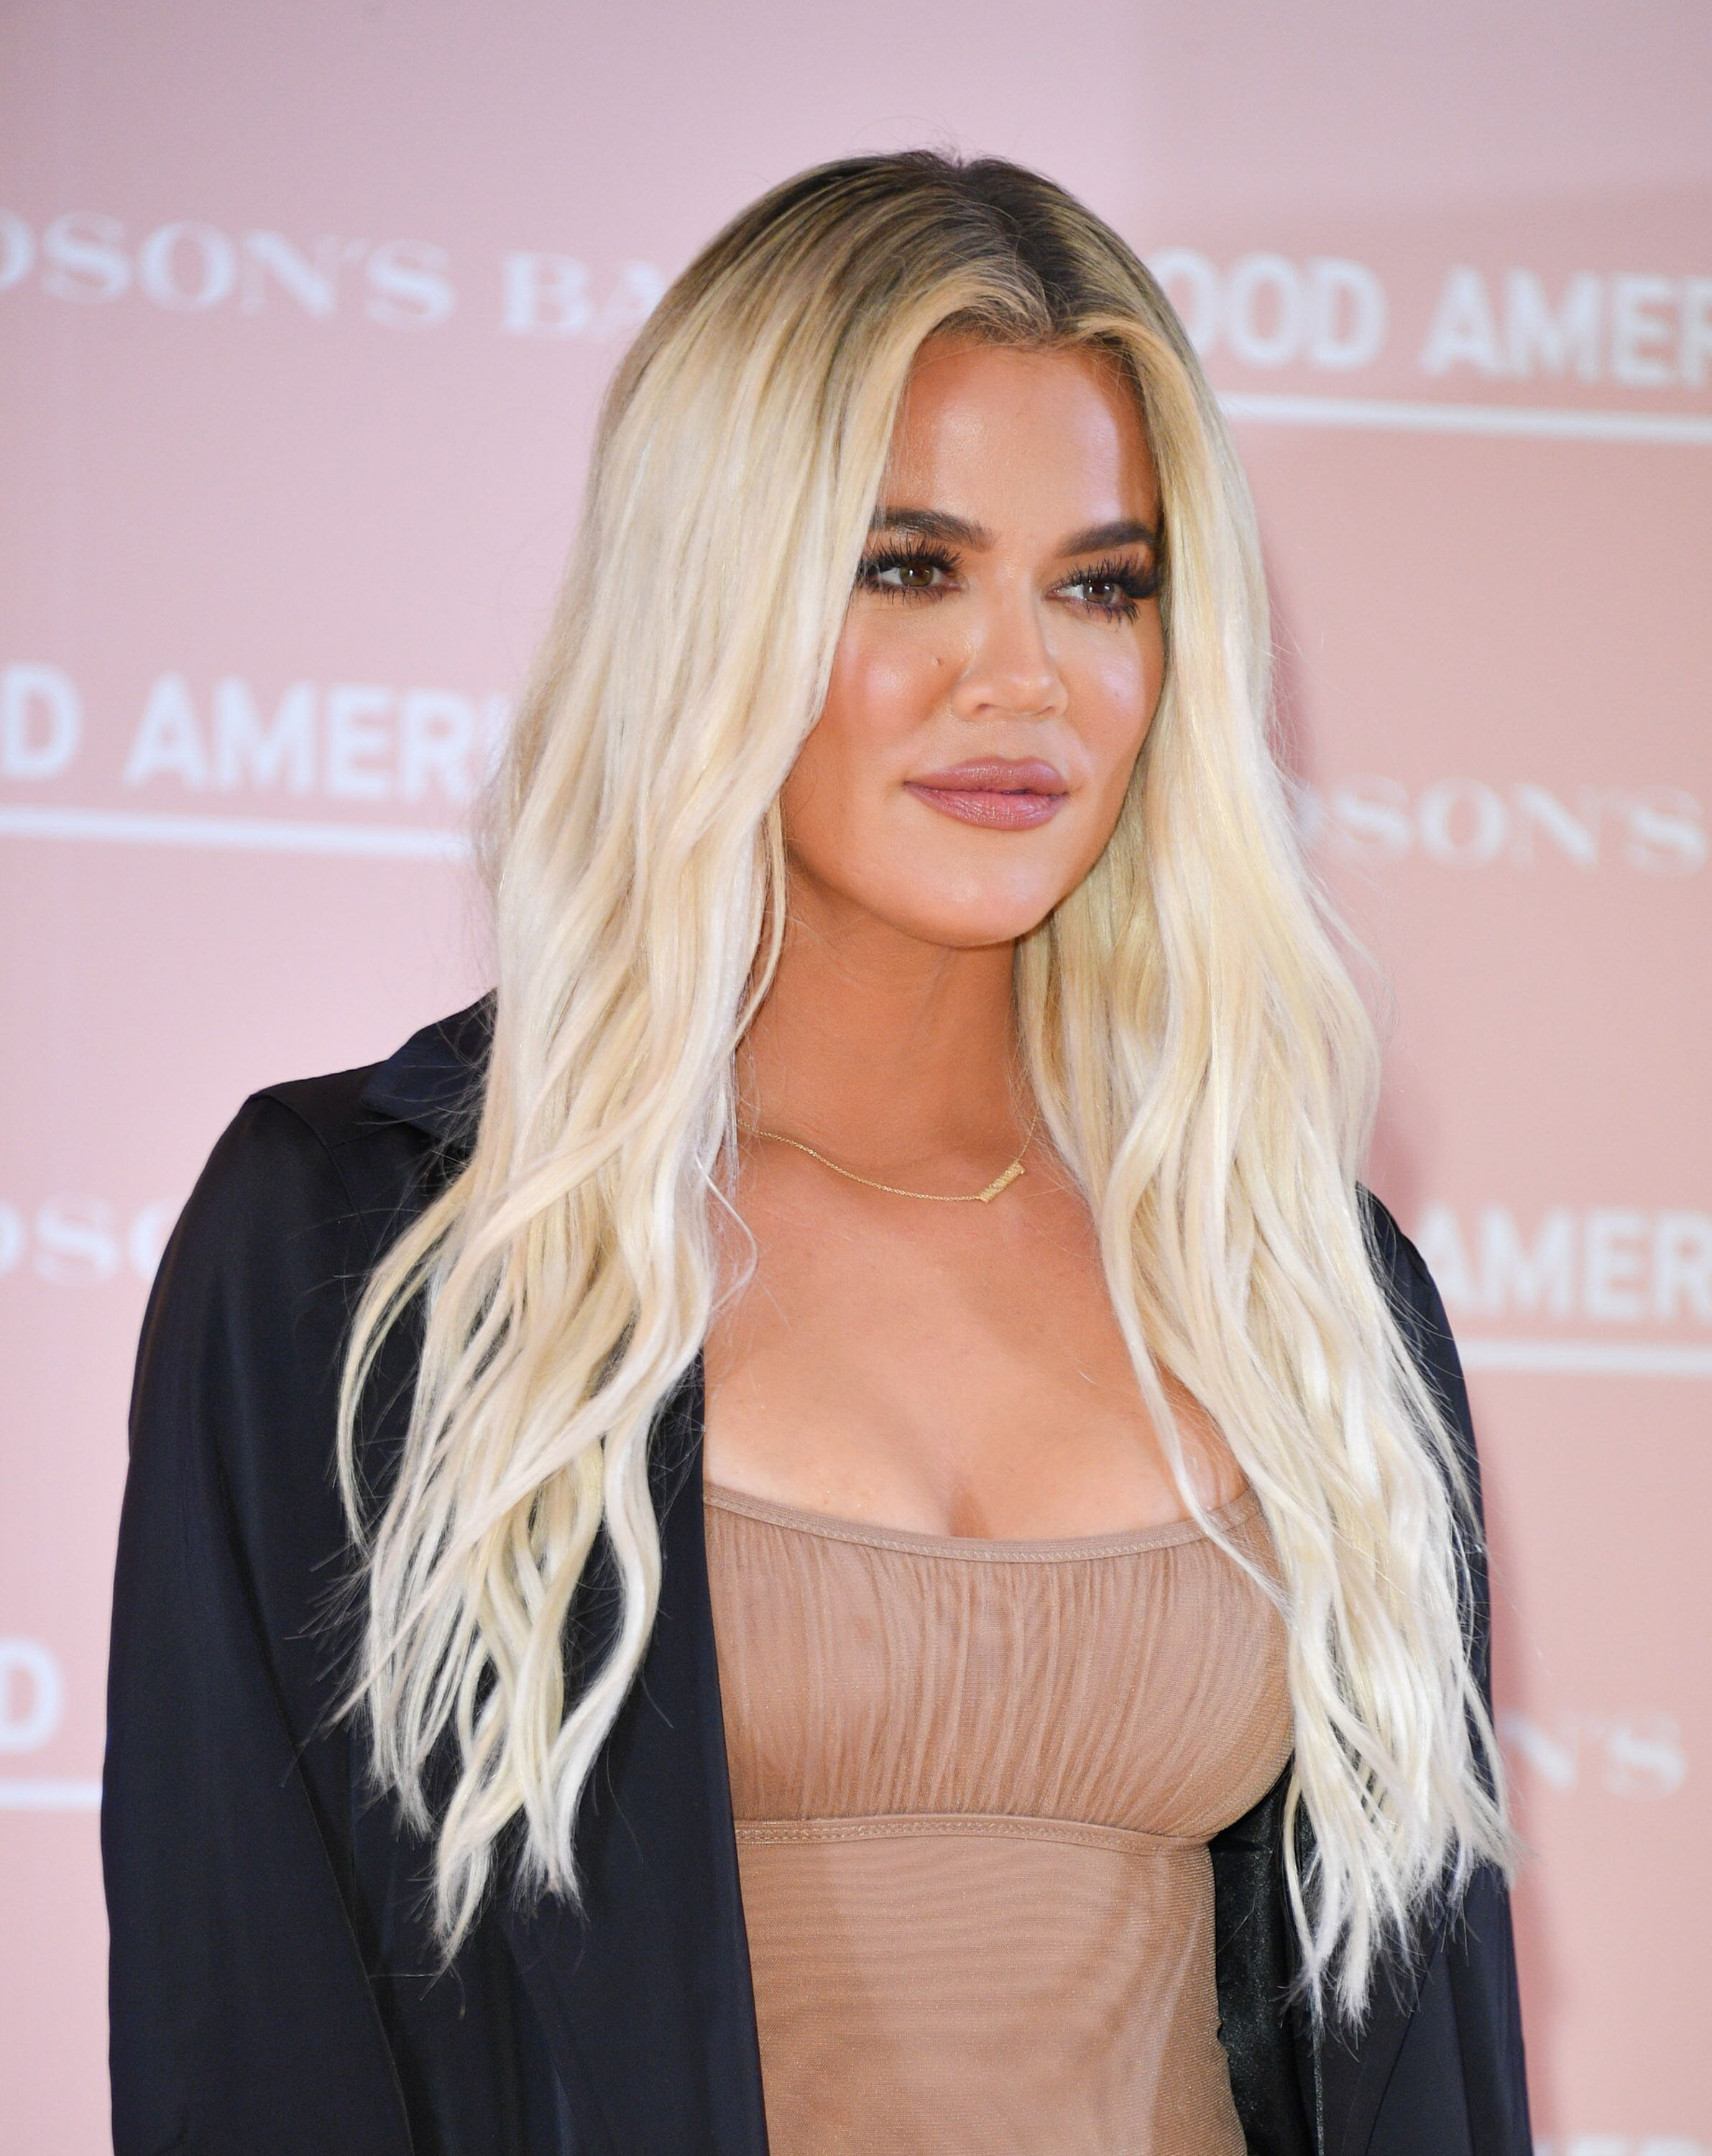 Khloe Kardashian lors du lancement de Good American à Toronto | Photo: George Pimentel / Getty Images